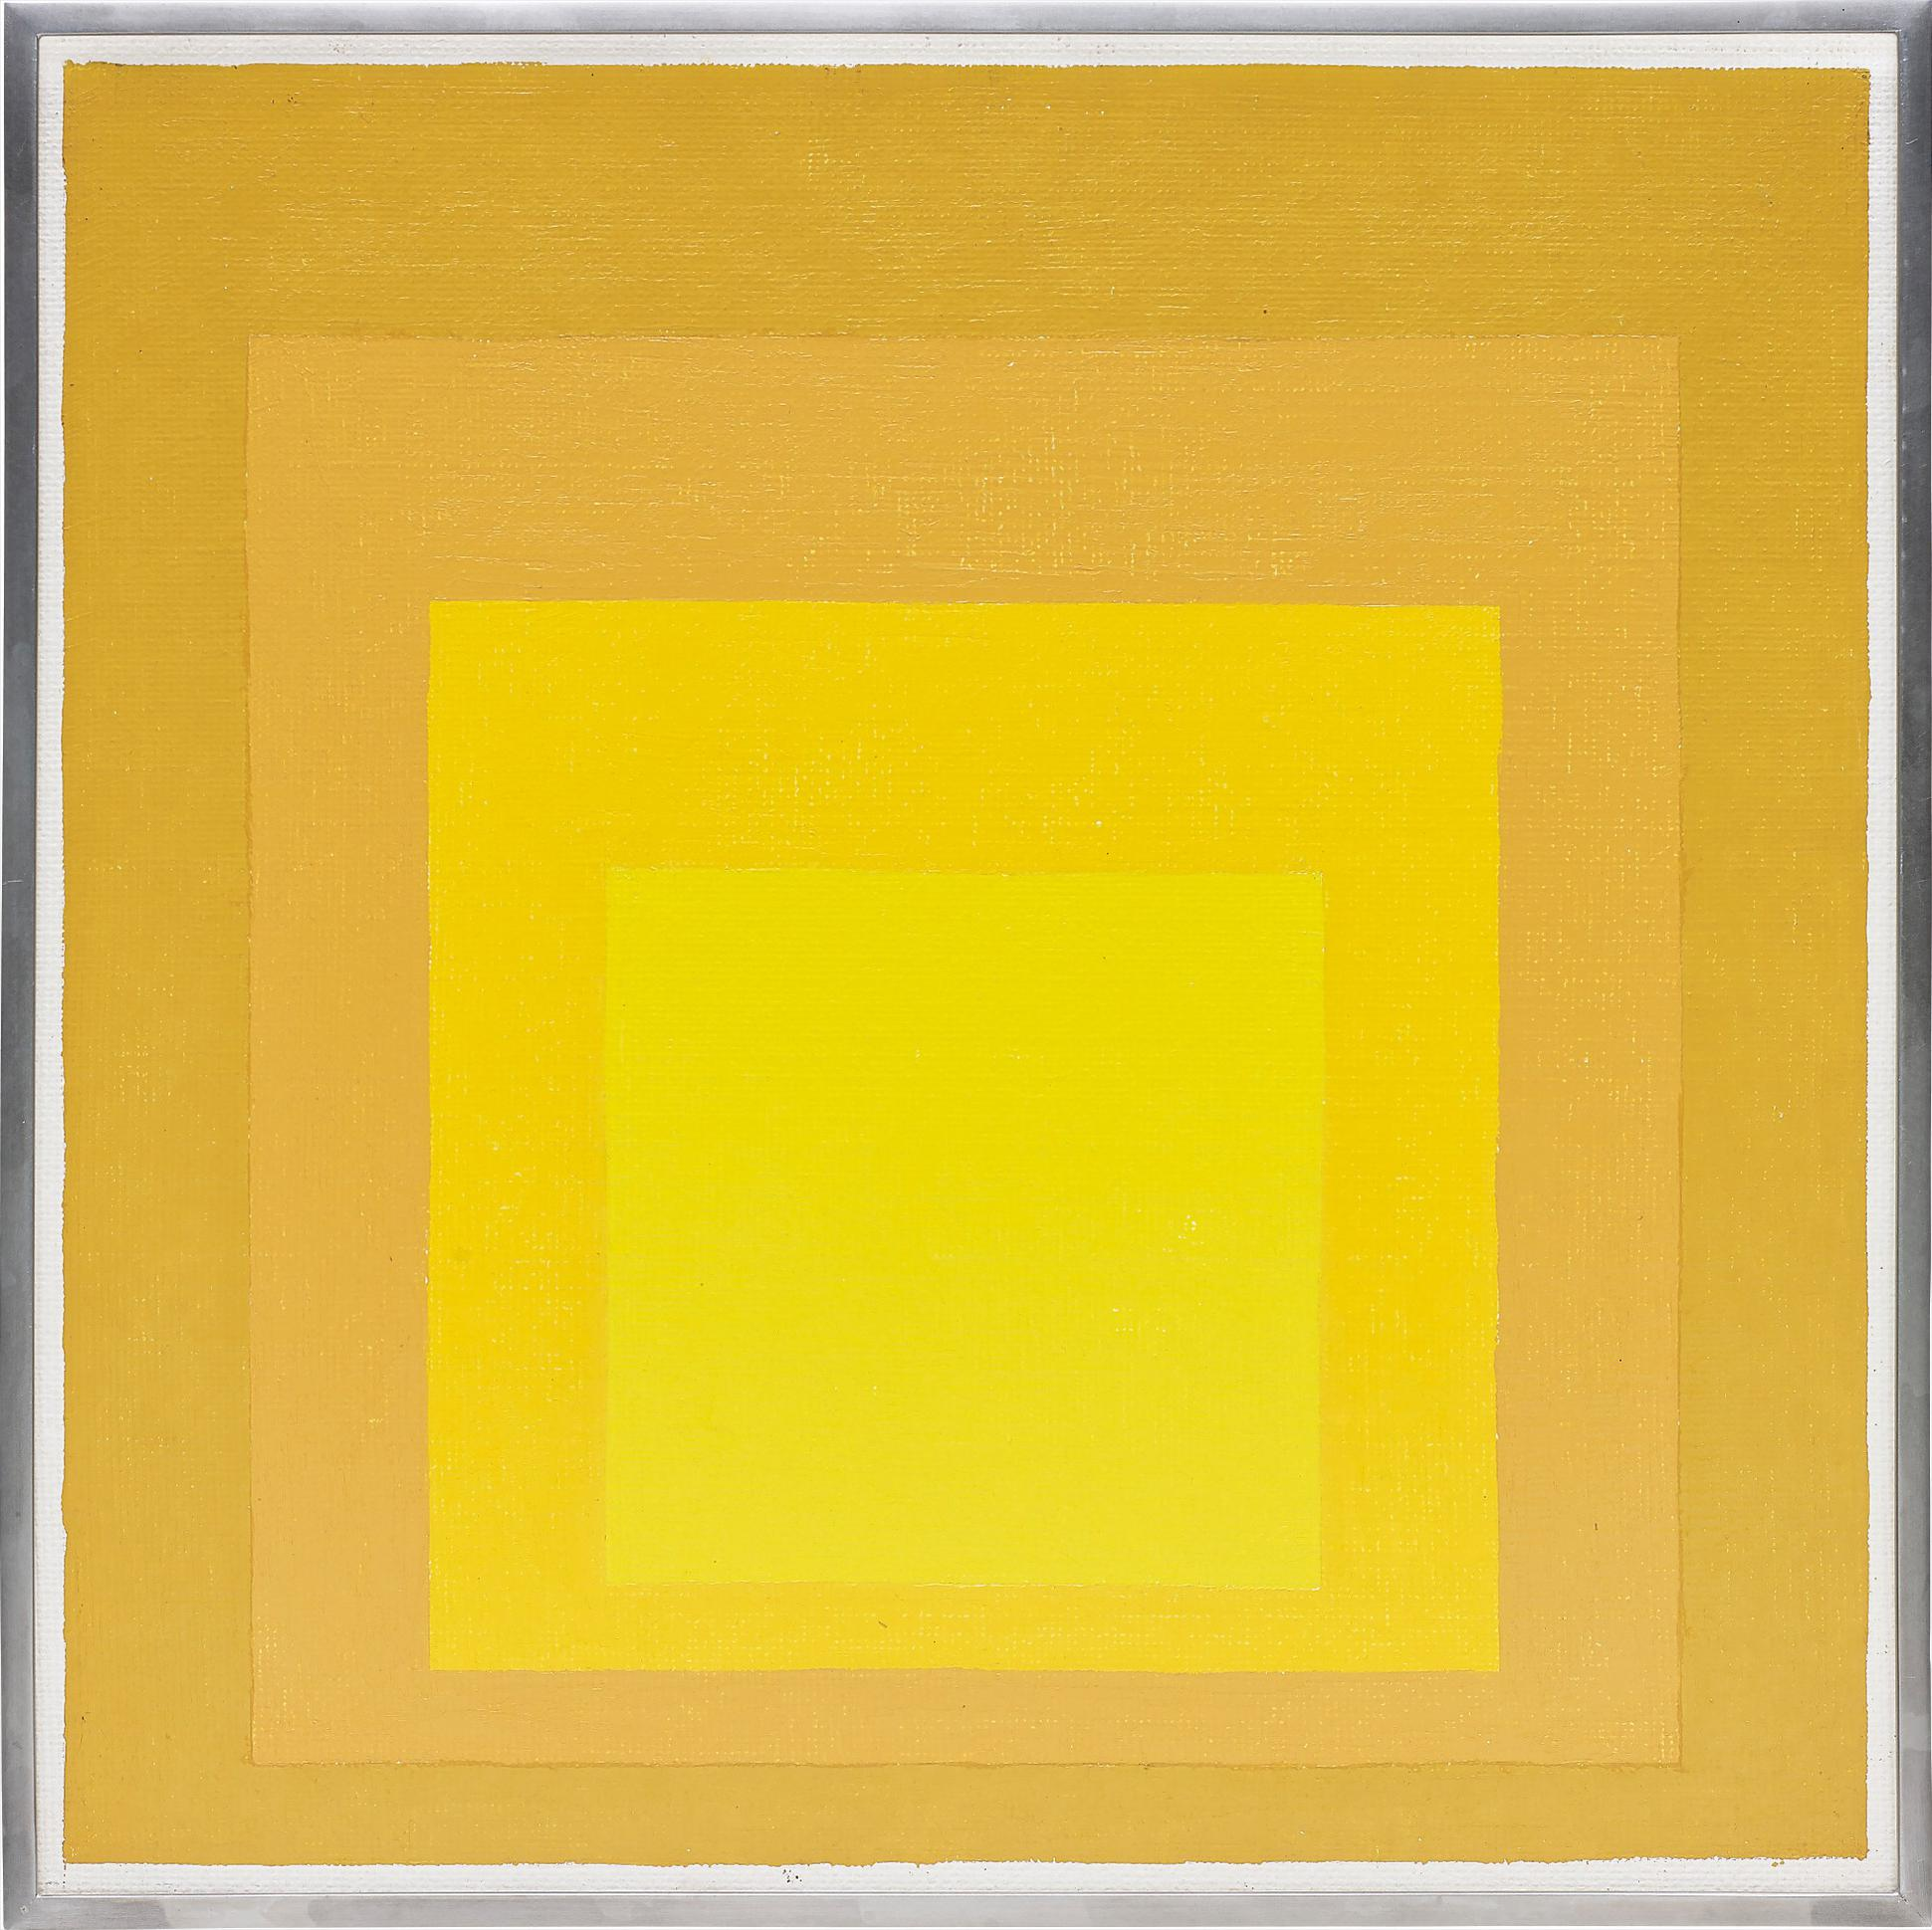 Josef Albers-Homage To The Square-1962